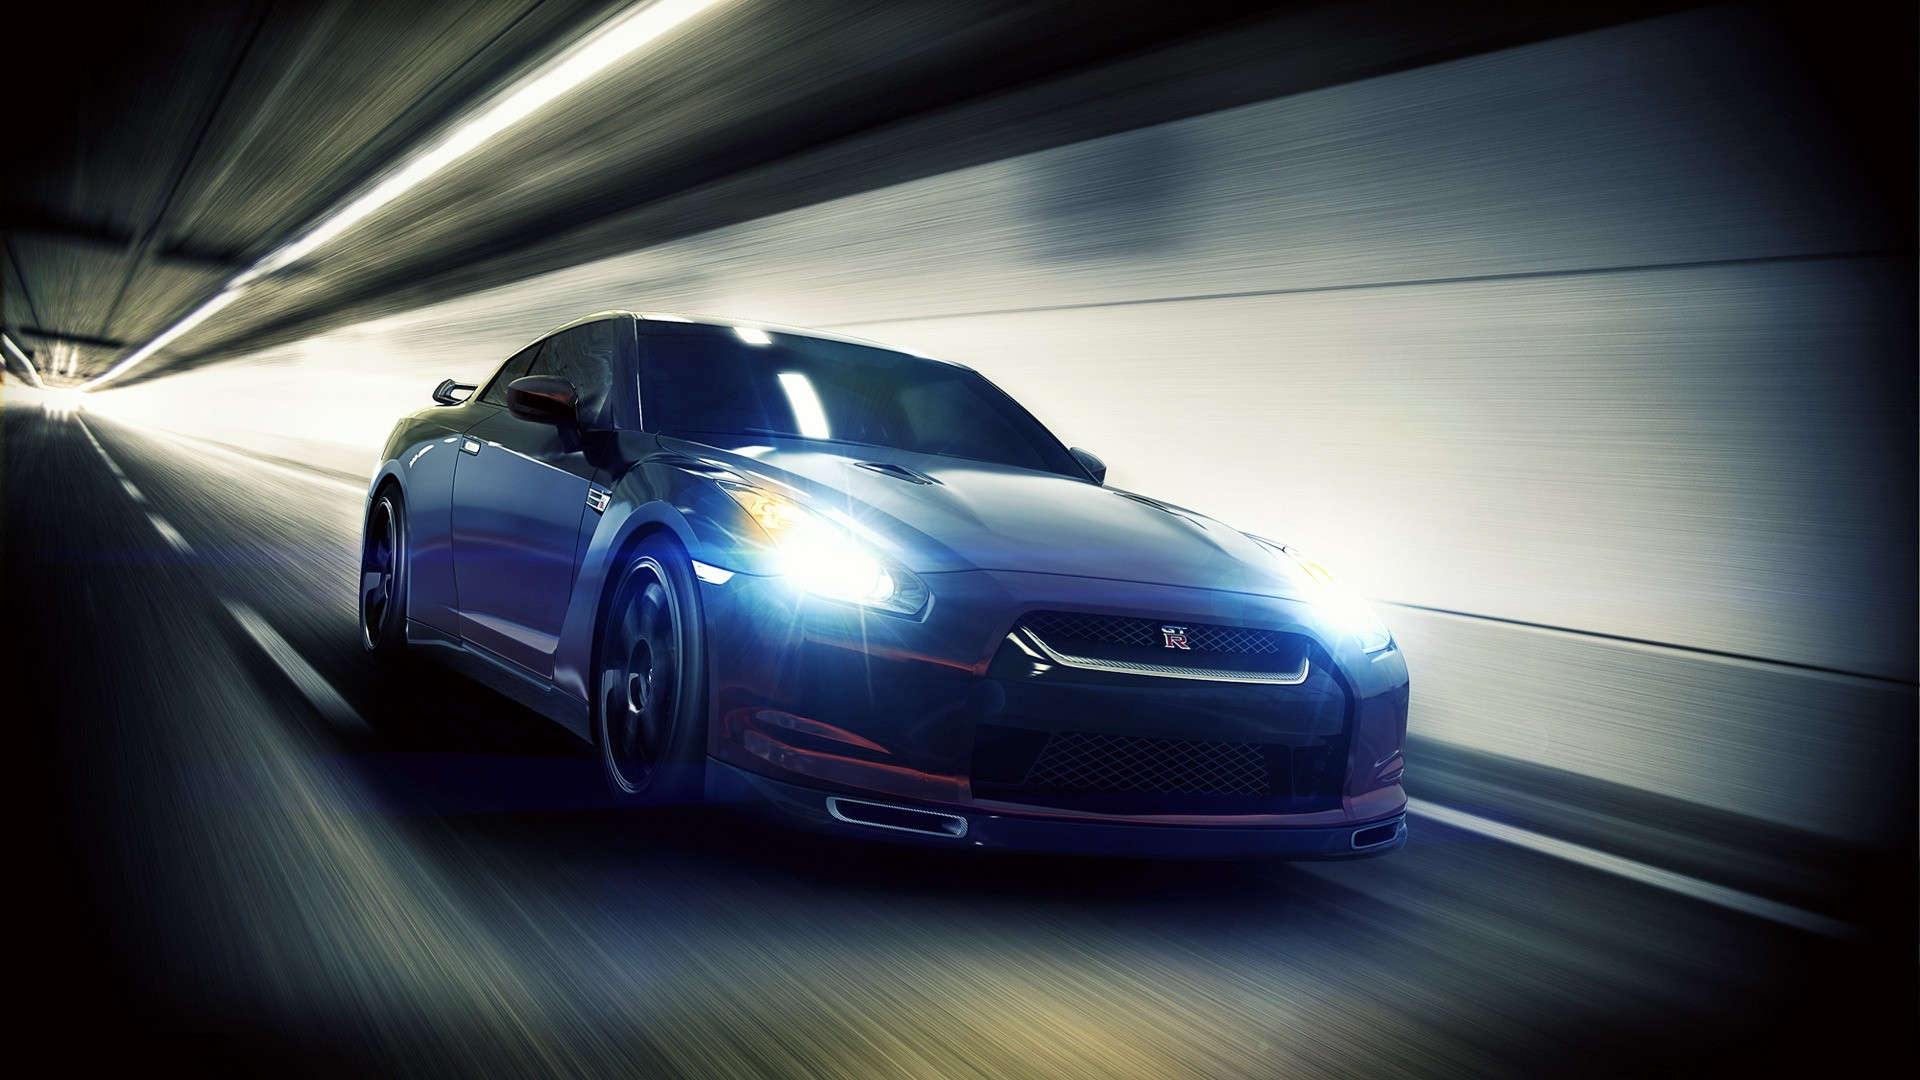 Blue Nissan GTR in the tunnel, photo wallpaper.